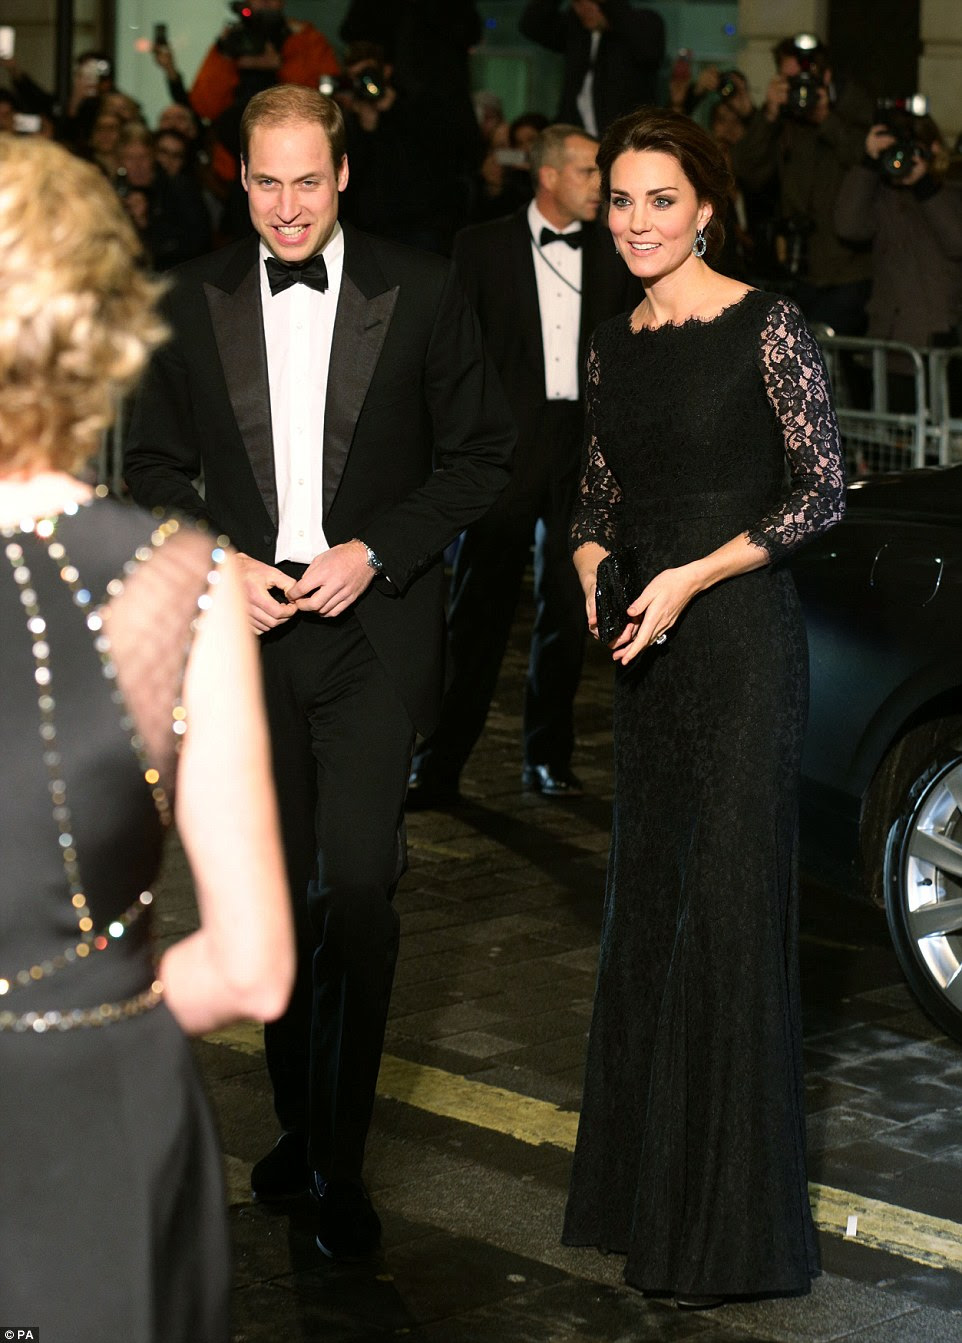 Ksiaze i ksiezna Cambridge na Royal Variety Performance / Ksiaze Harry w Suffolk.